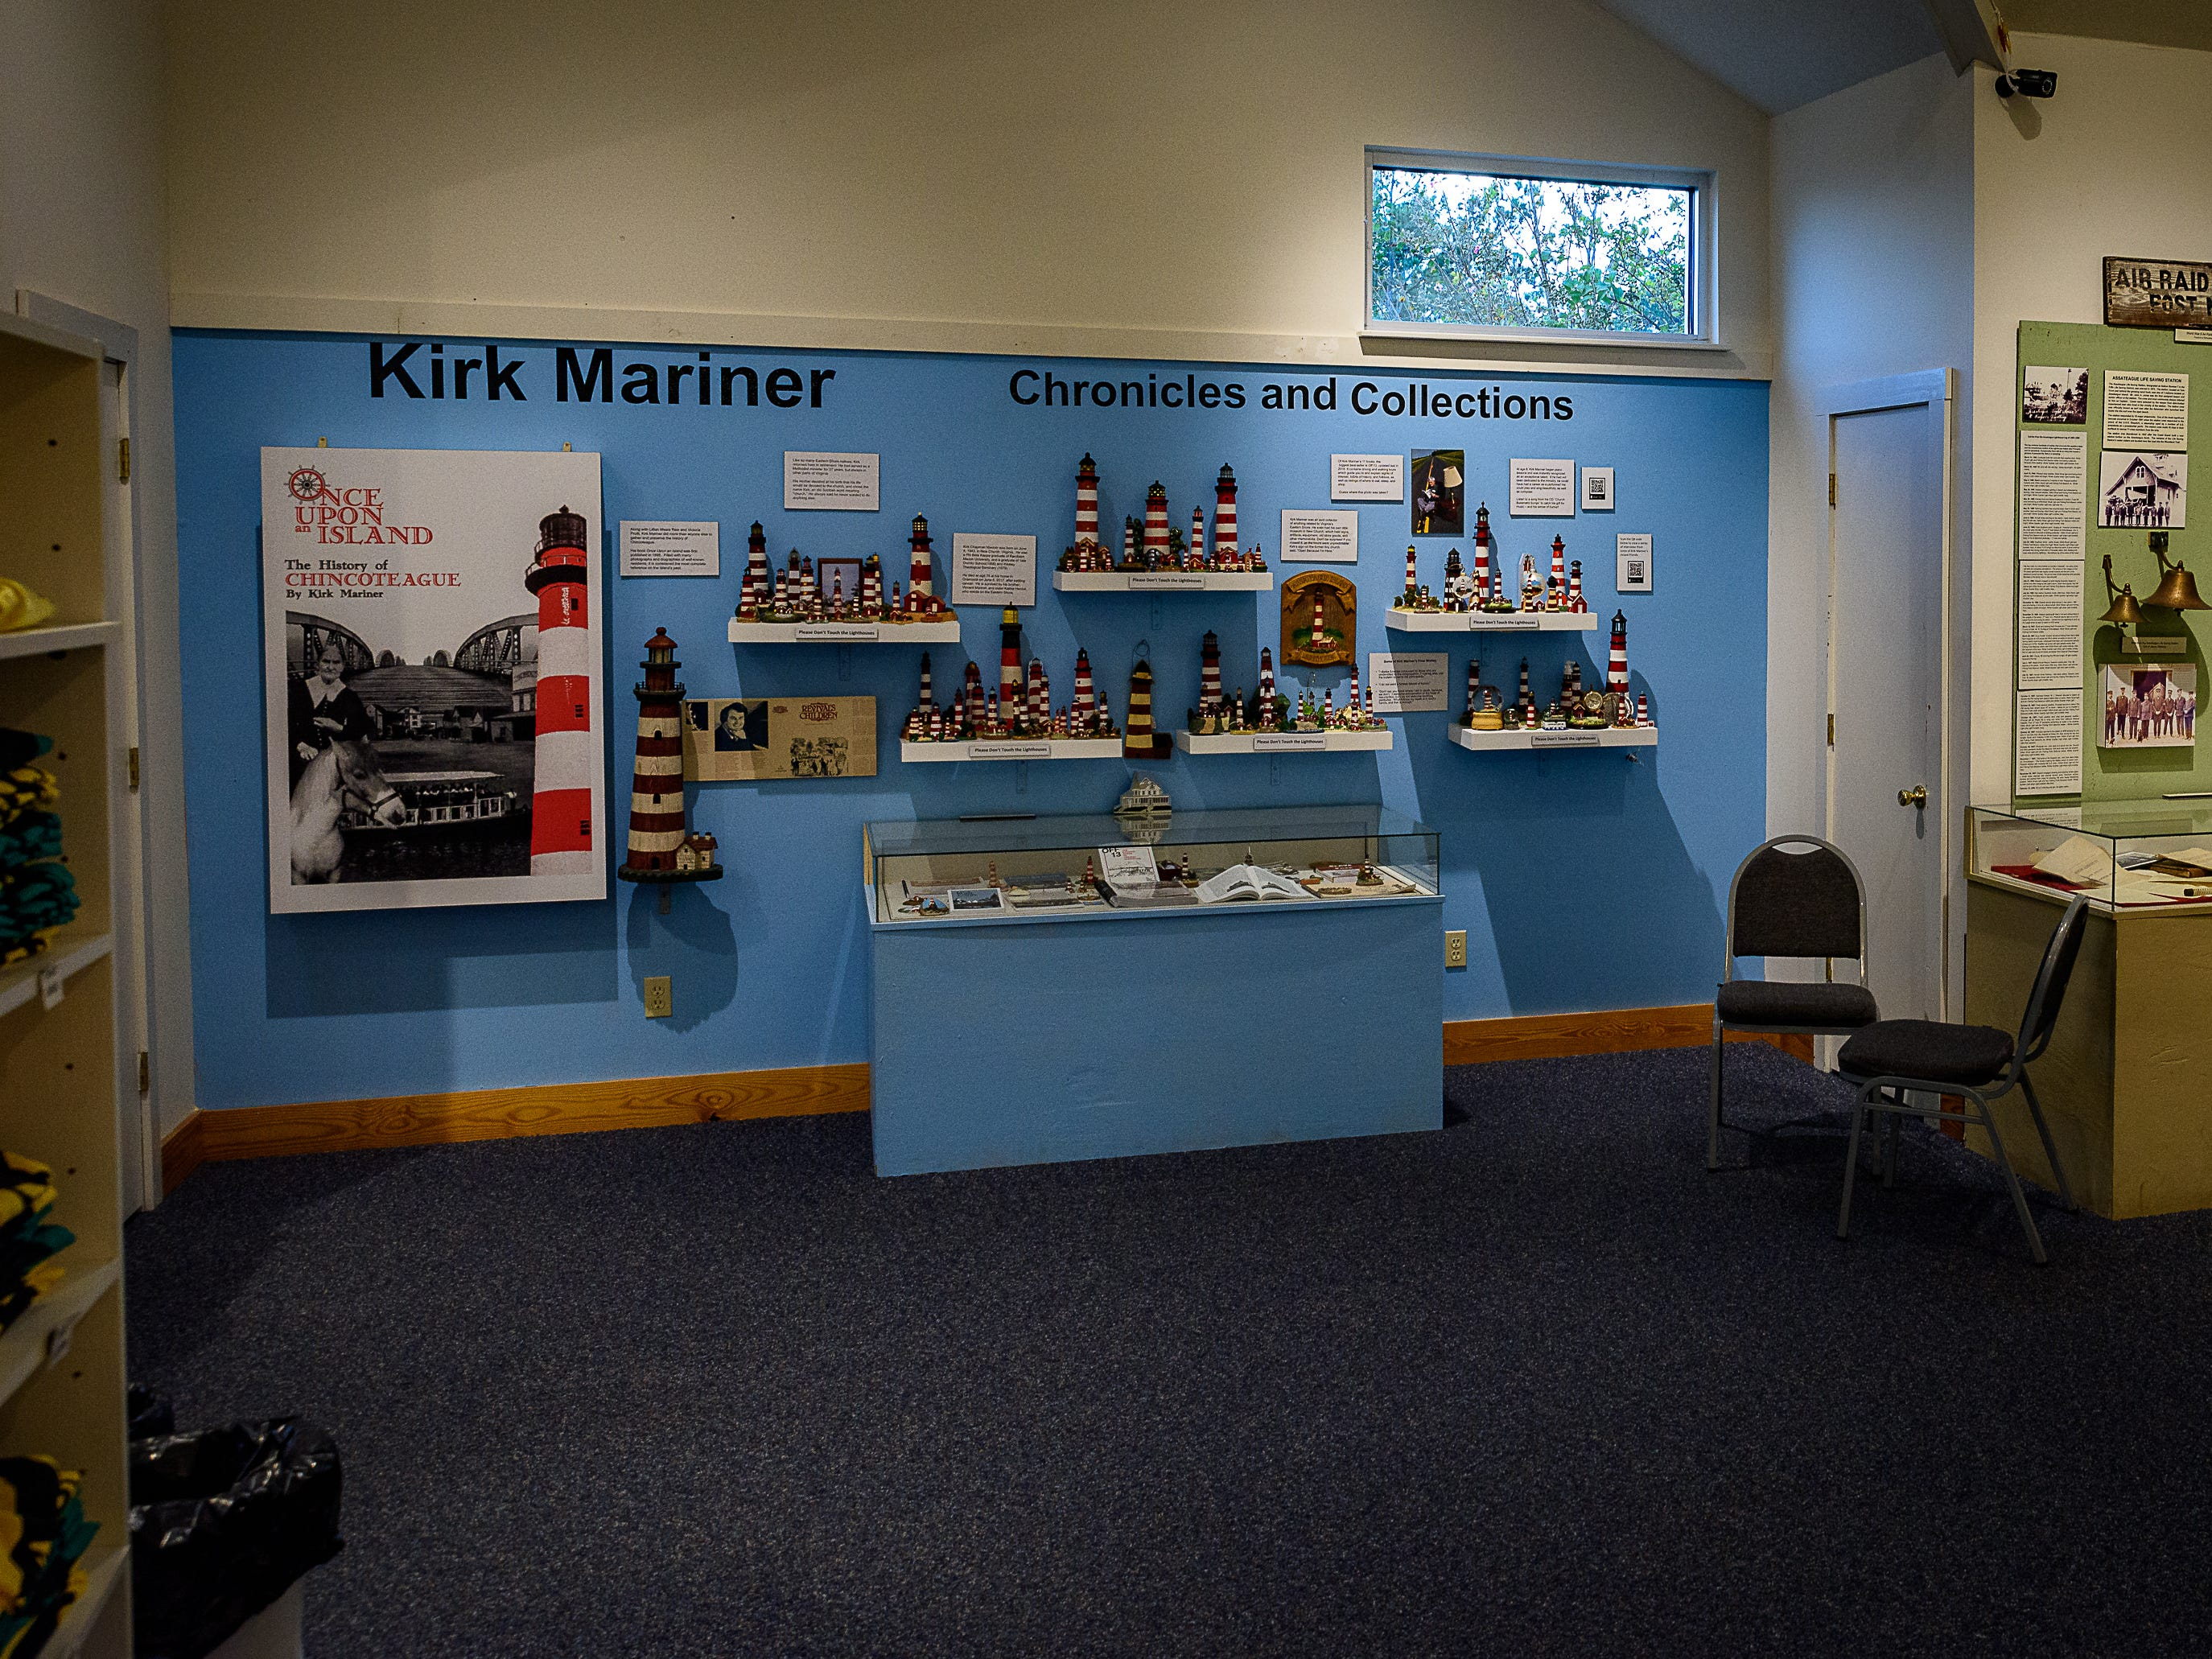 The Kirk Mariner Assateague Lighthouse collection is now on exhibit at the Museum of Chincoteague.